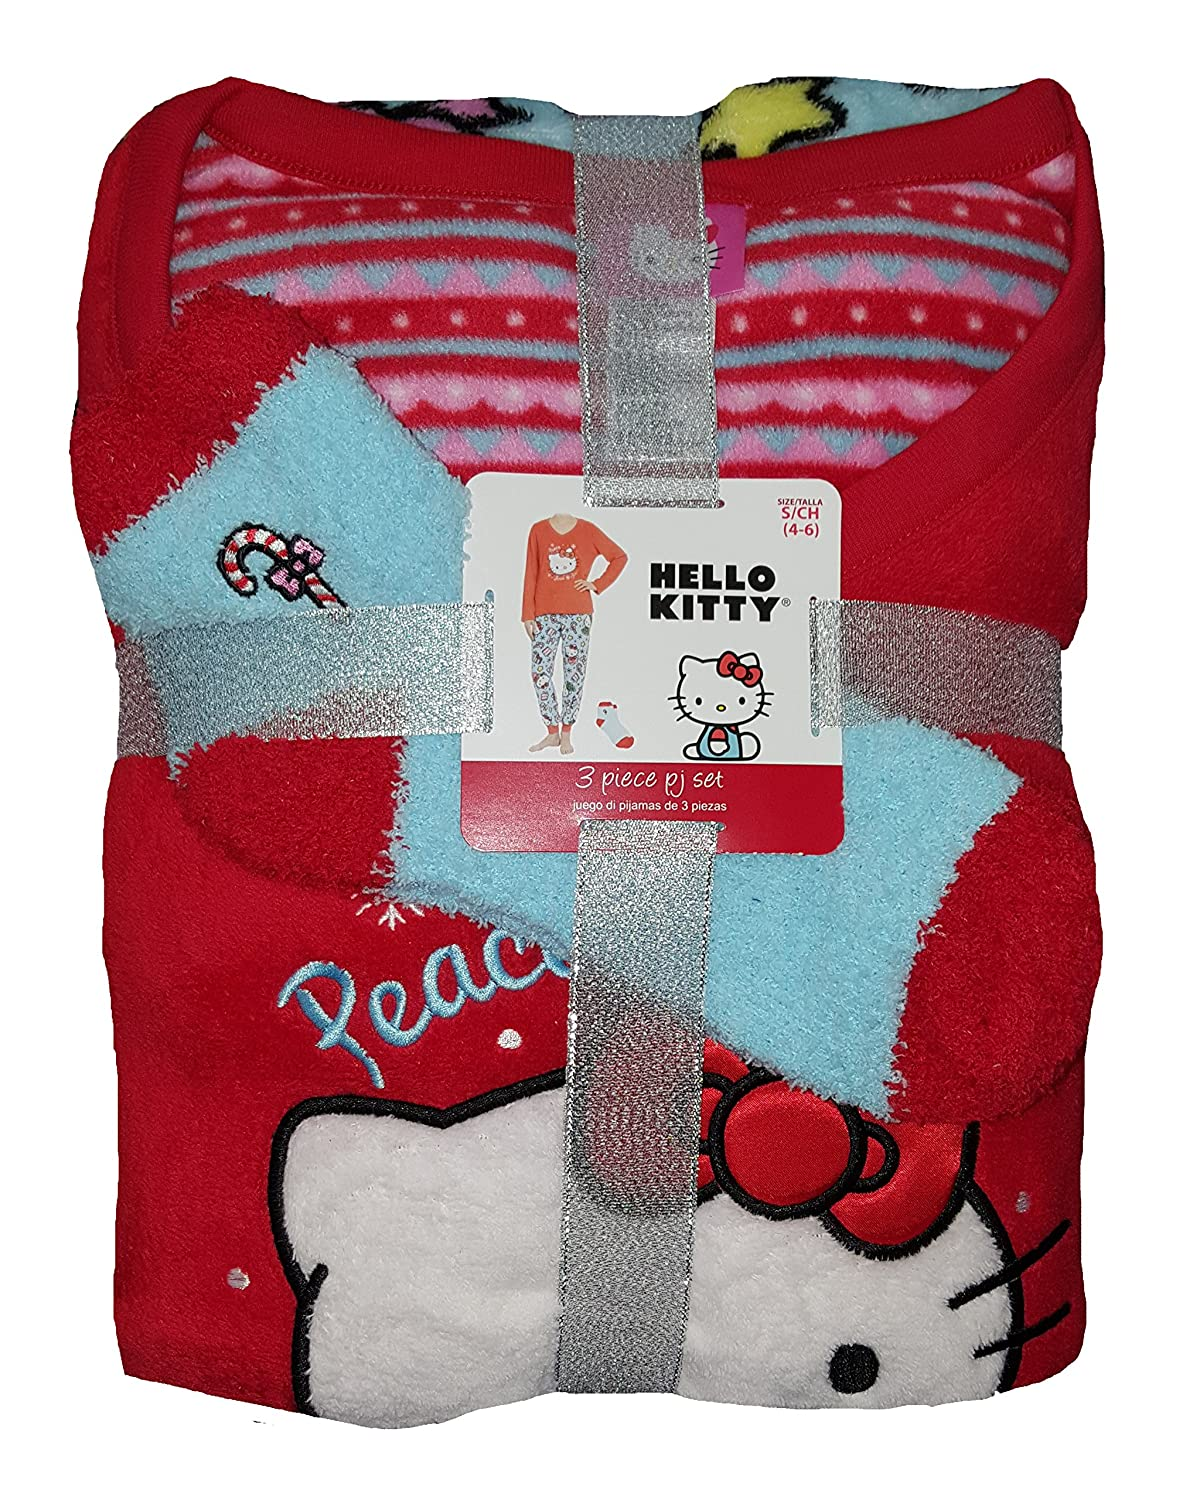 Sanrio Hello Kitty Red 3 Piece Fleece Pajama Sleep Set w/Socks at Amazon Womens Clothing store: